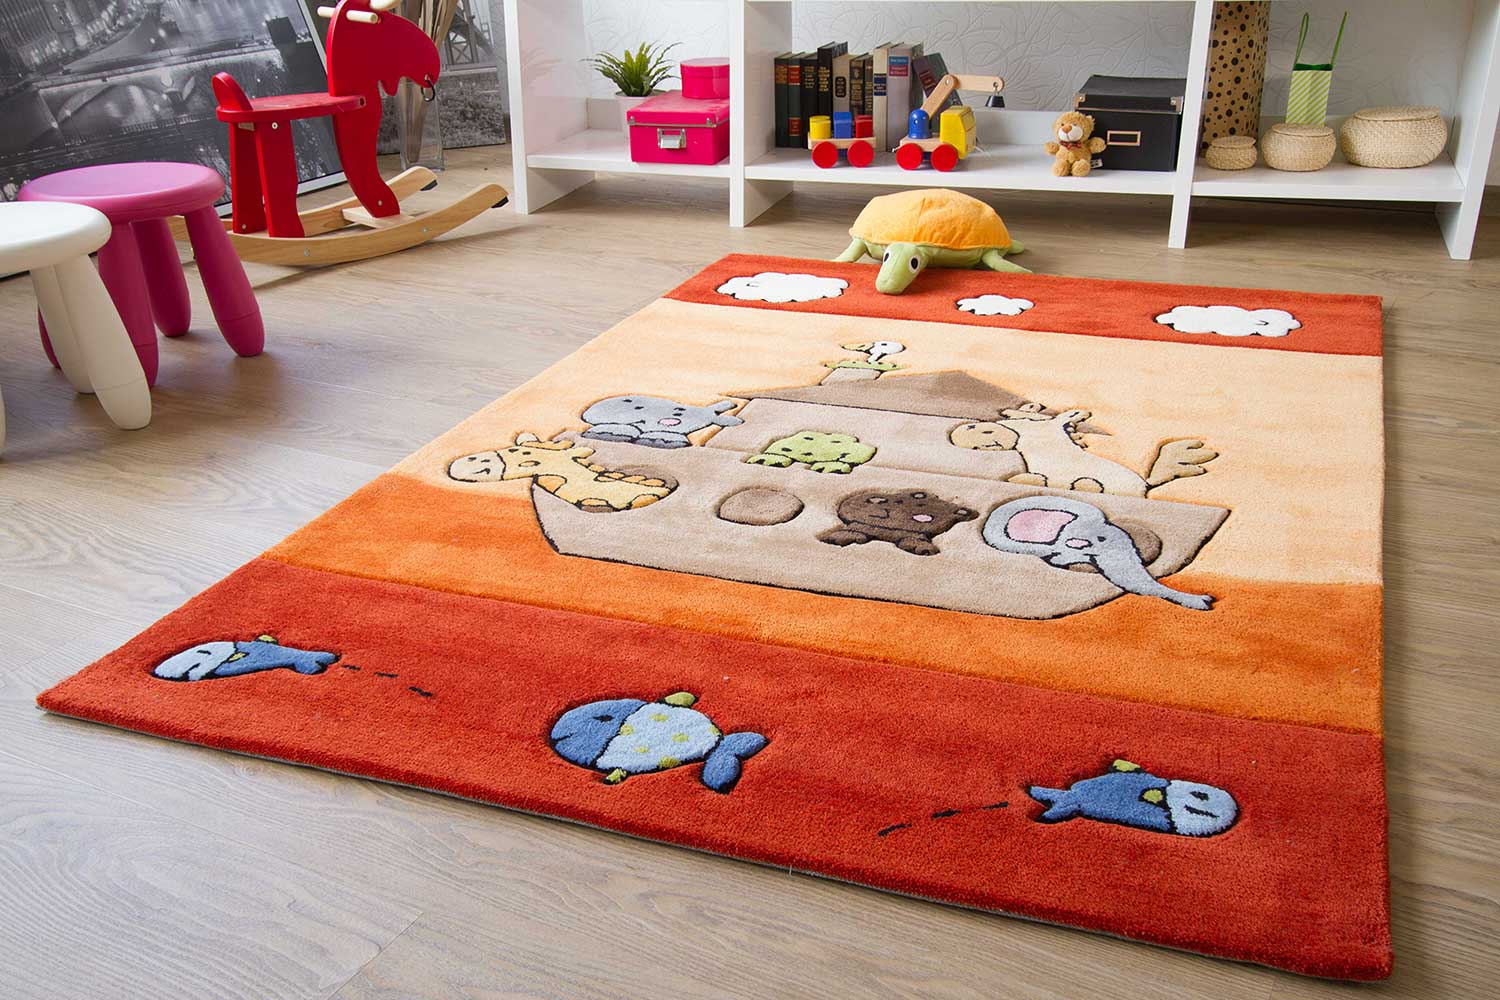 kinderteppich little carpet meerjungfrau bibi global carpet. Black Bedroom Furniture Sets. Home Design Ideas